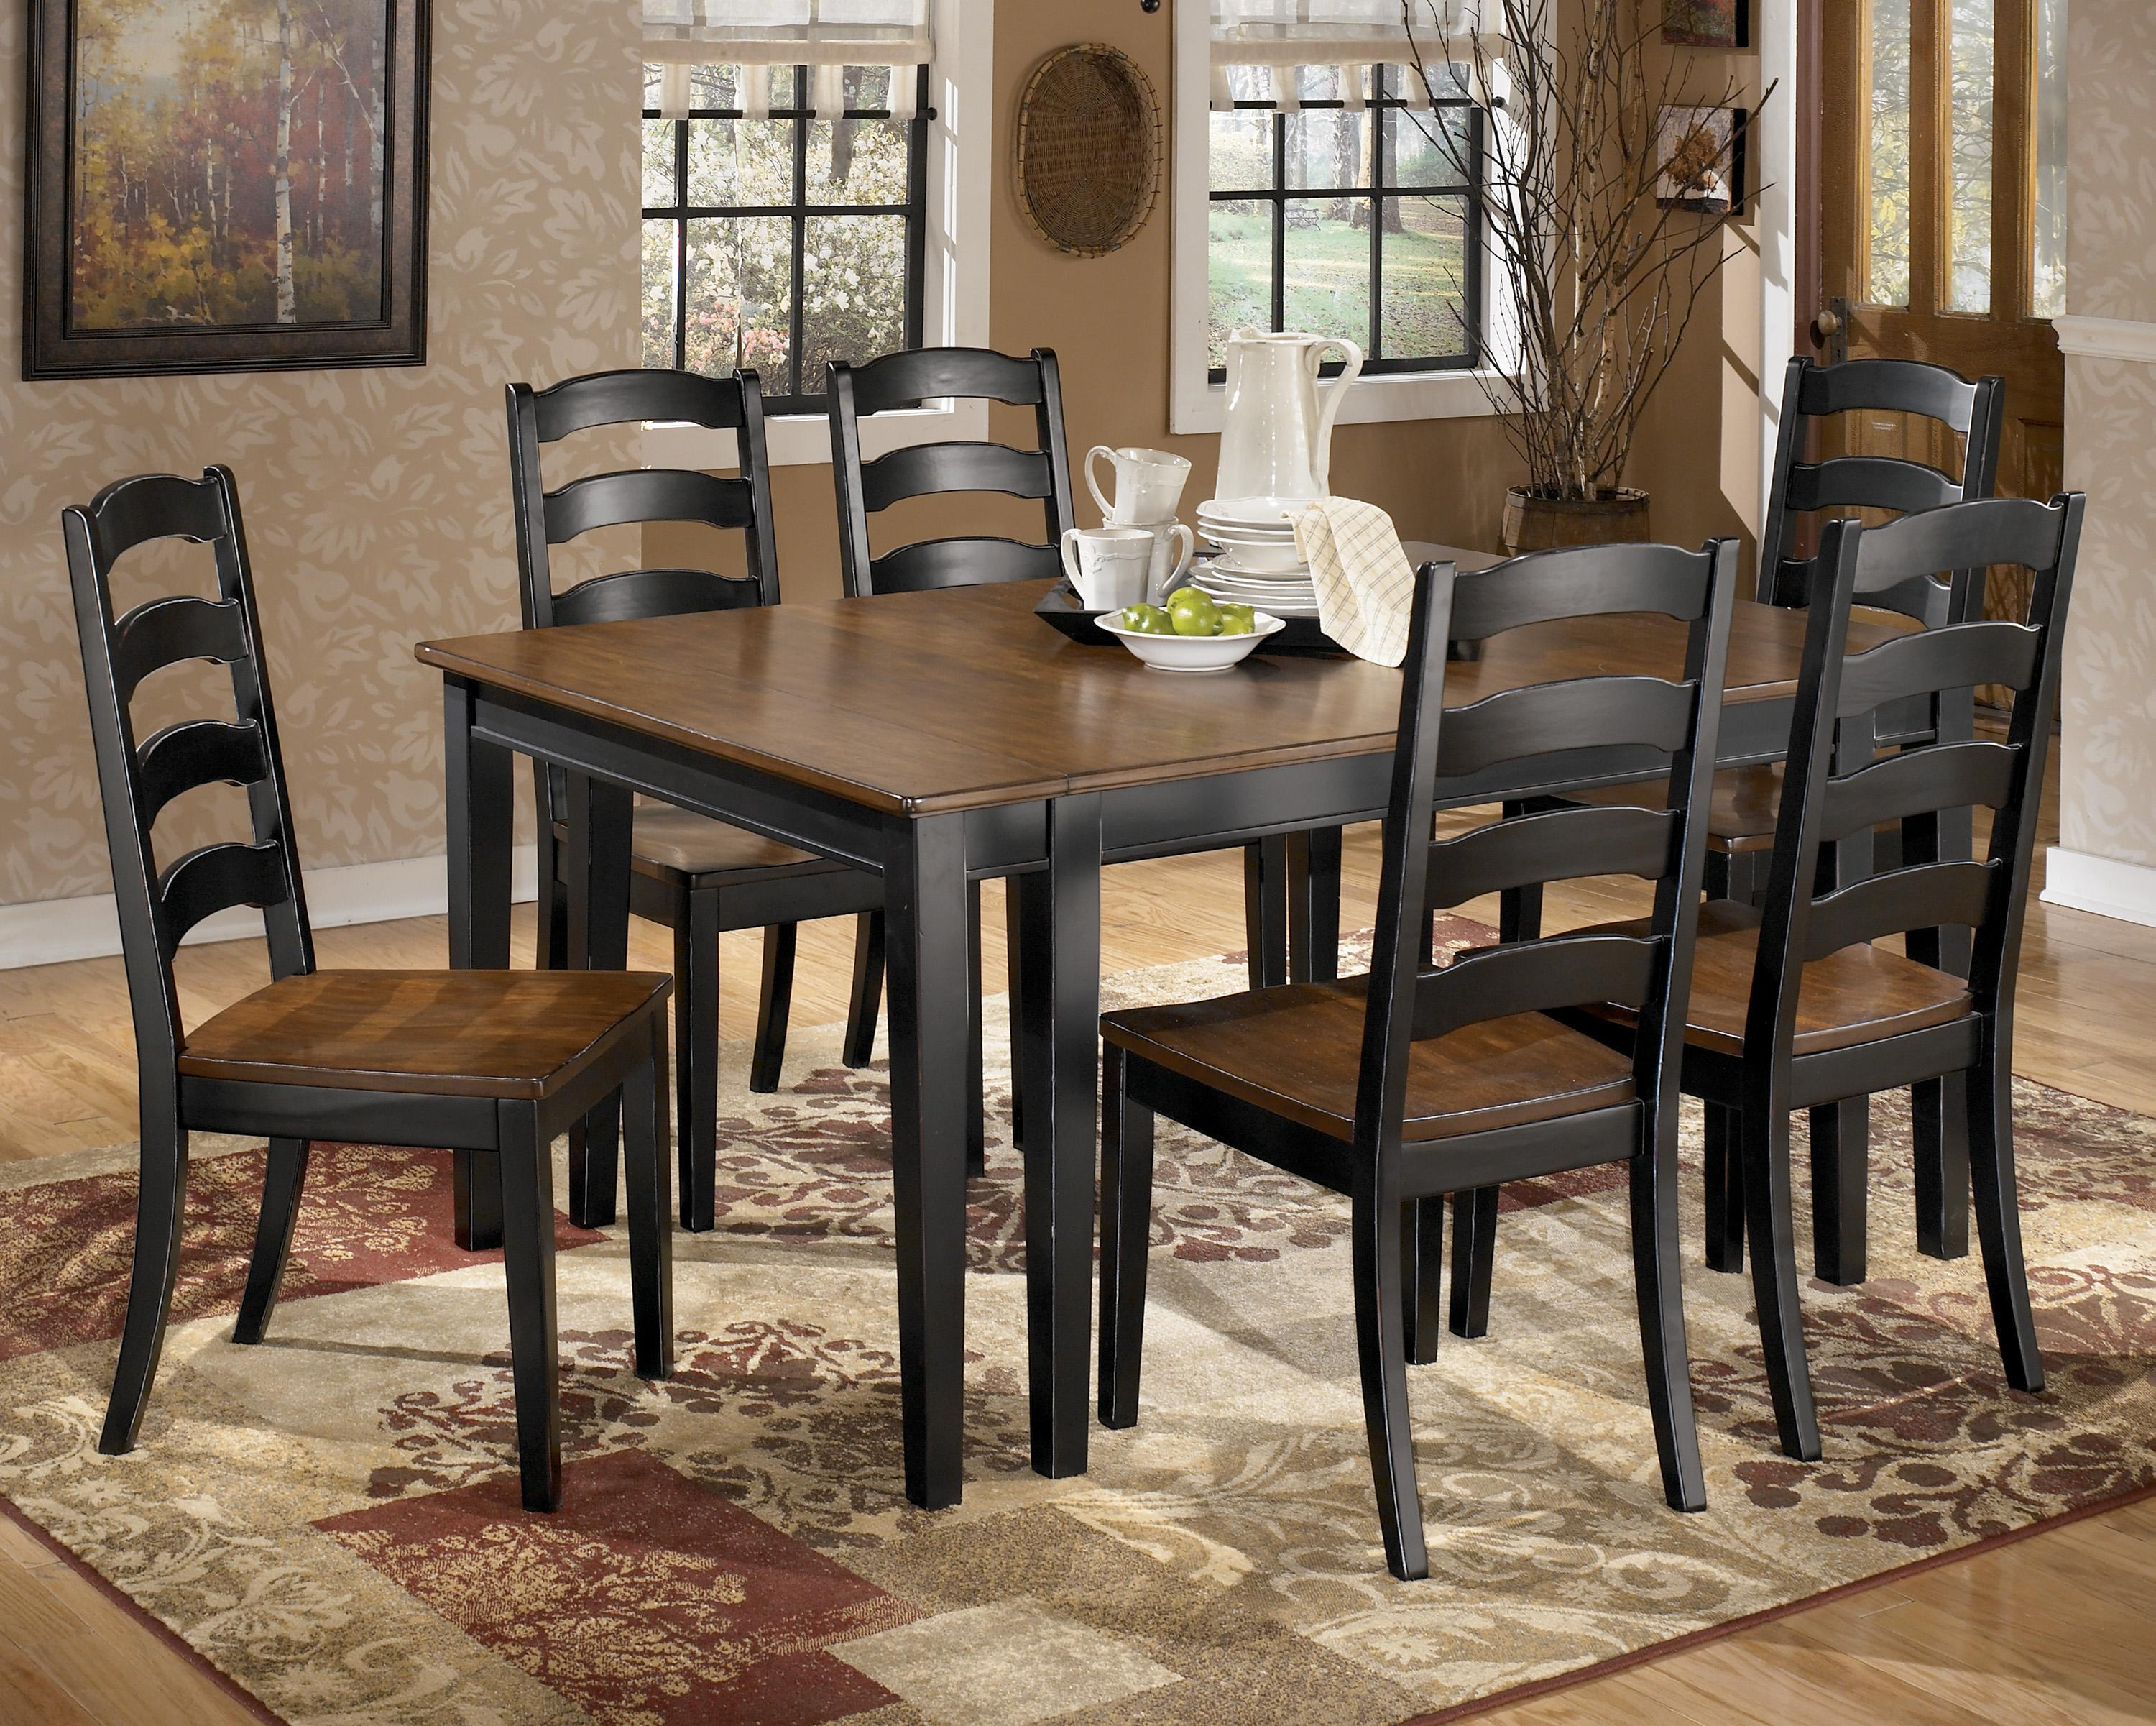 Dining room sets target homesfeed - Images of dining room sets ...